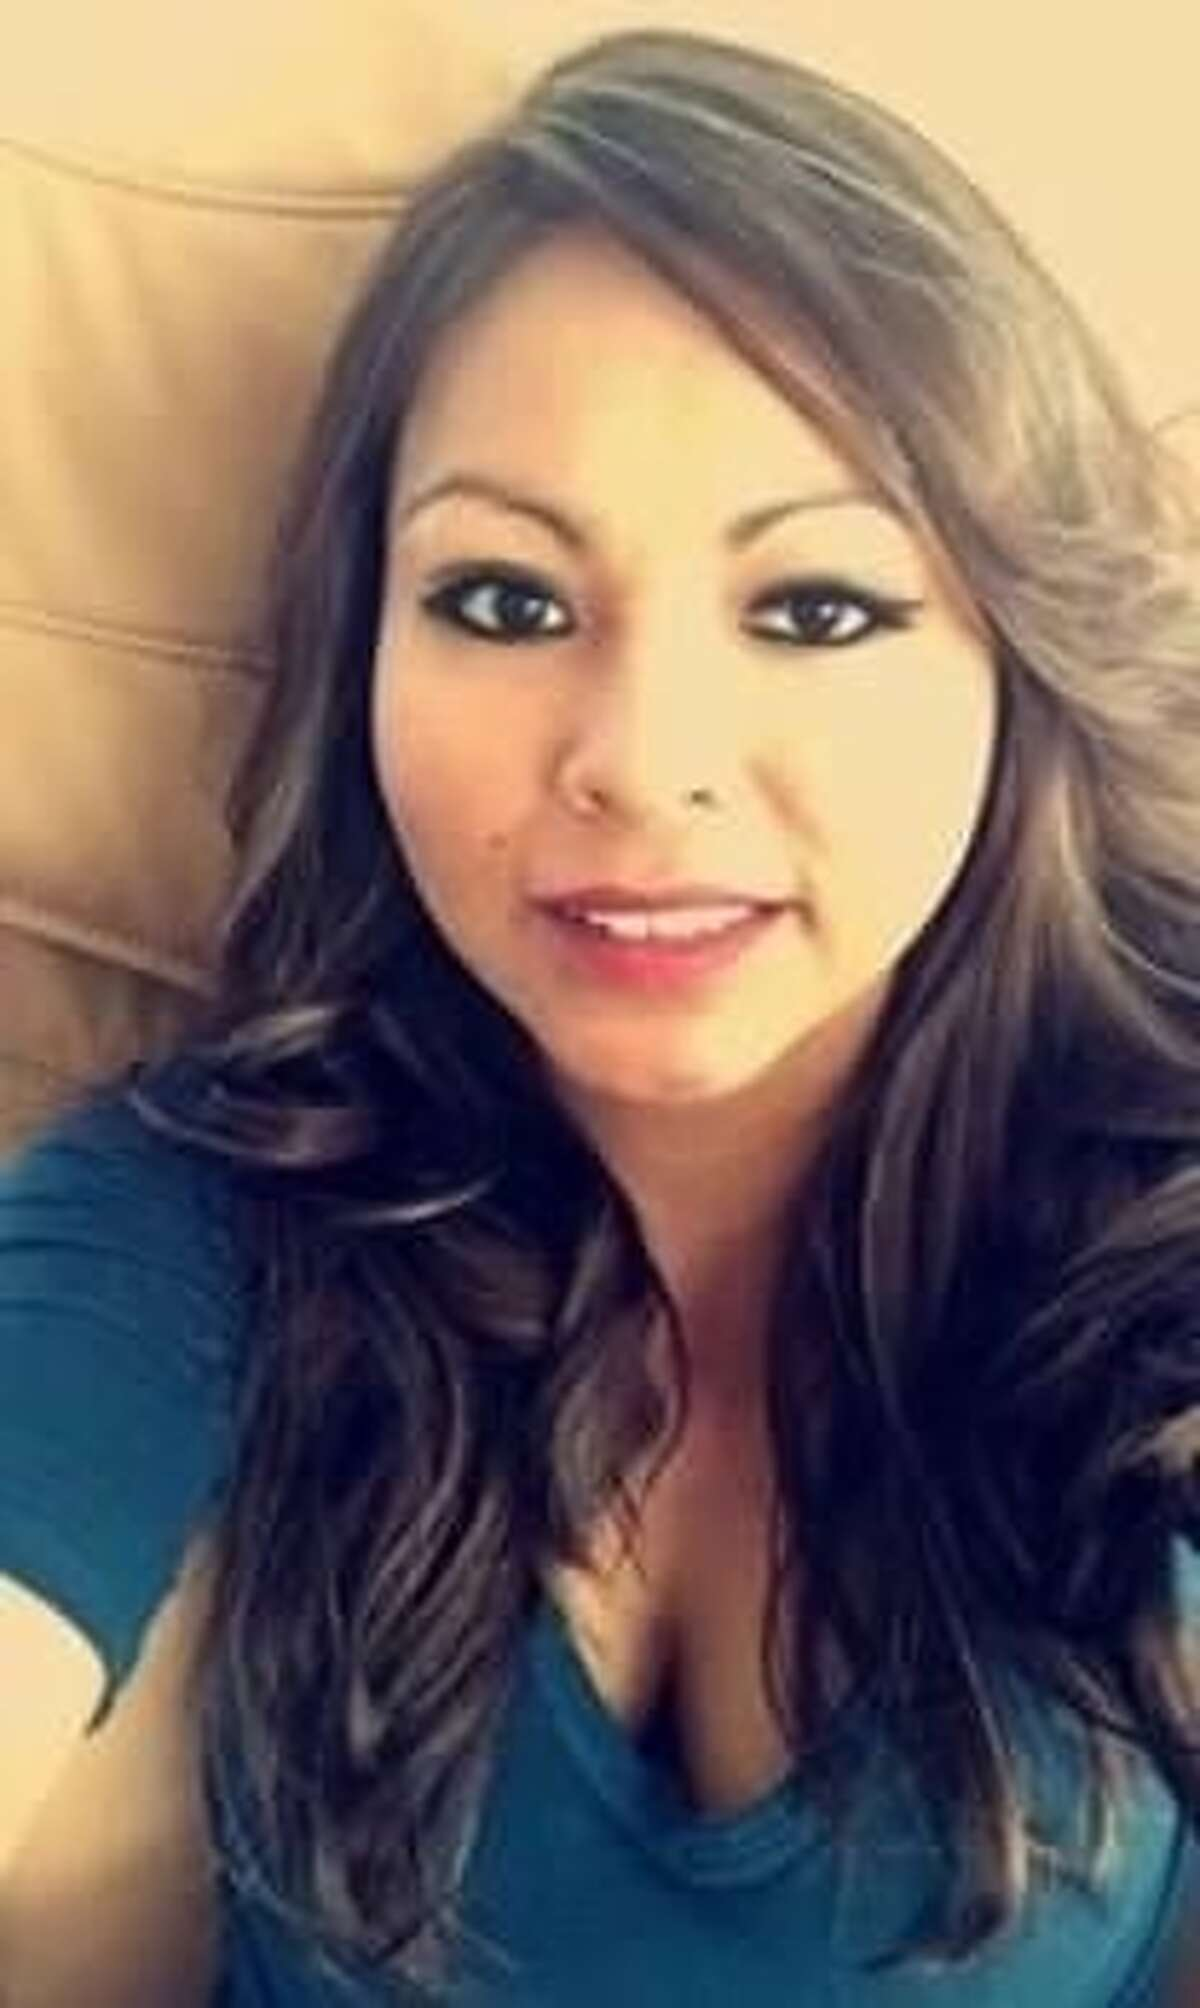 Yesenia Espinoza, 31, was killed in an accident at Beaumont's Exxon Mobil refinery on Dec. 1.